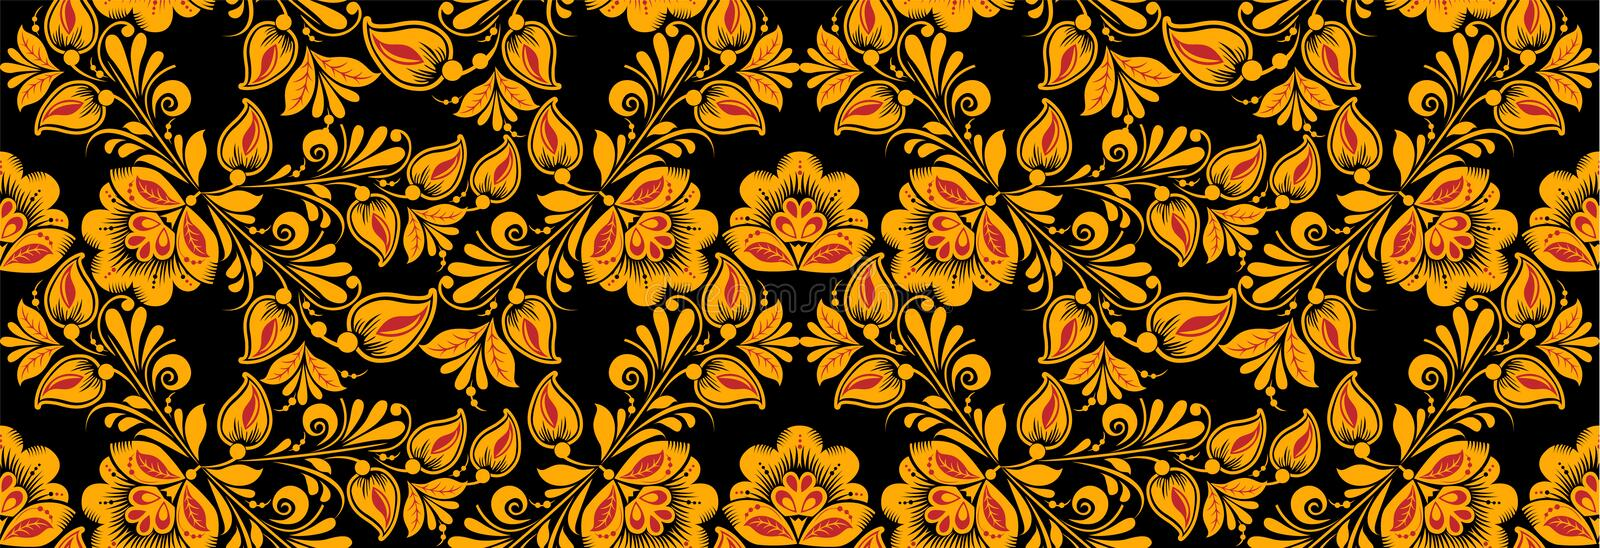 Floral seamless pattern, hohloma drawing style. Floral seamless pattern vector, hohloma drawing style in classic black, red and gold colors. Khokhloma, Russian royalty free illustration